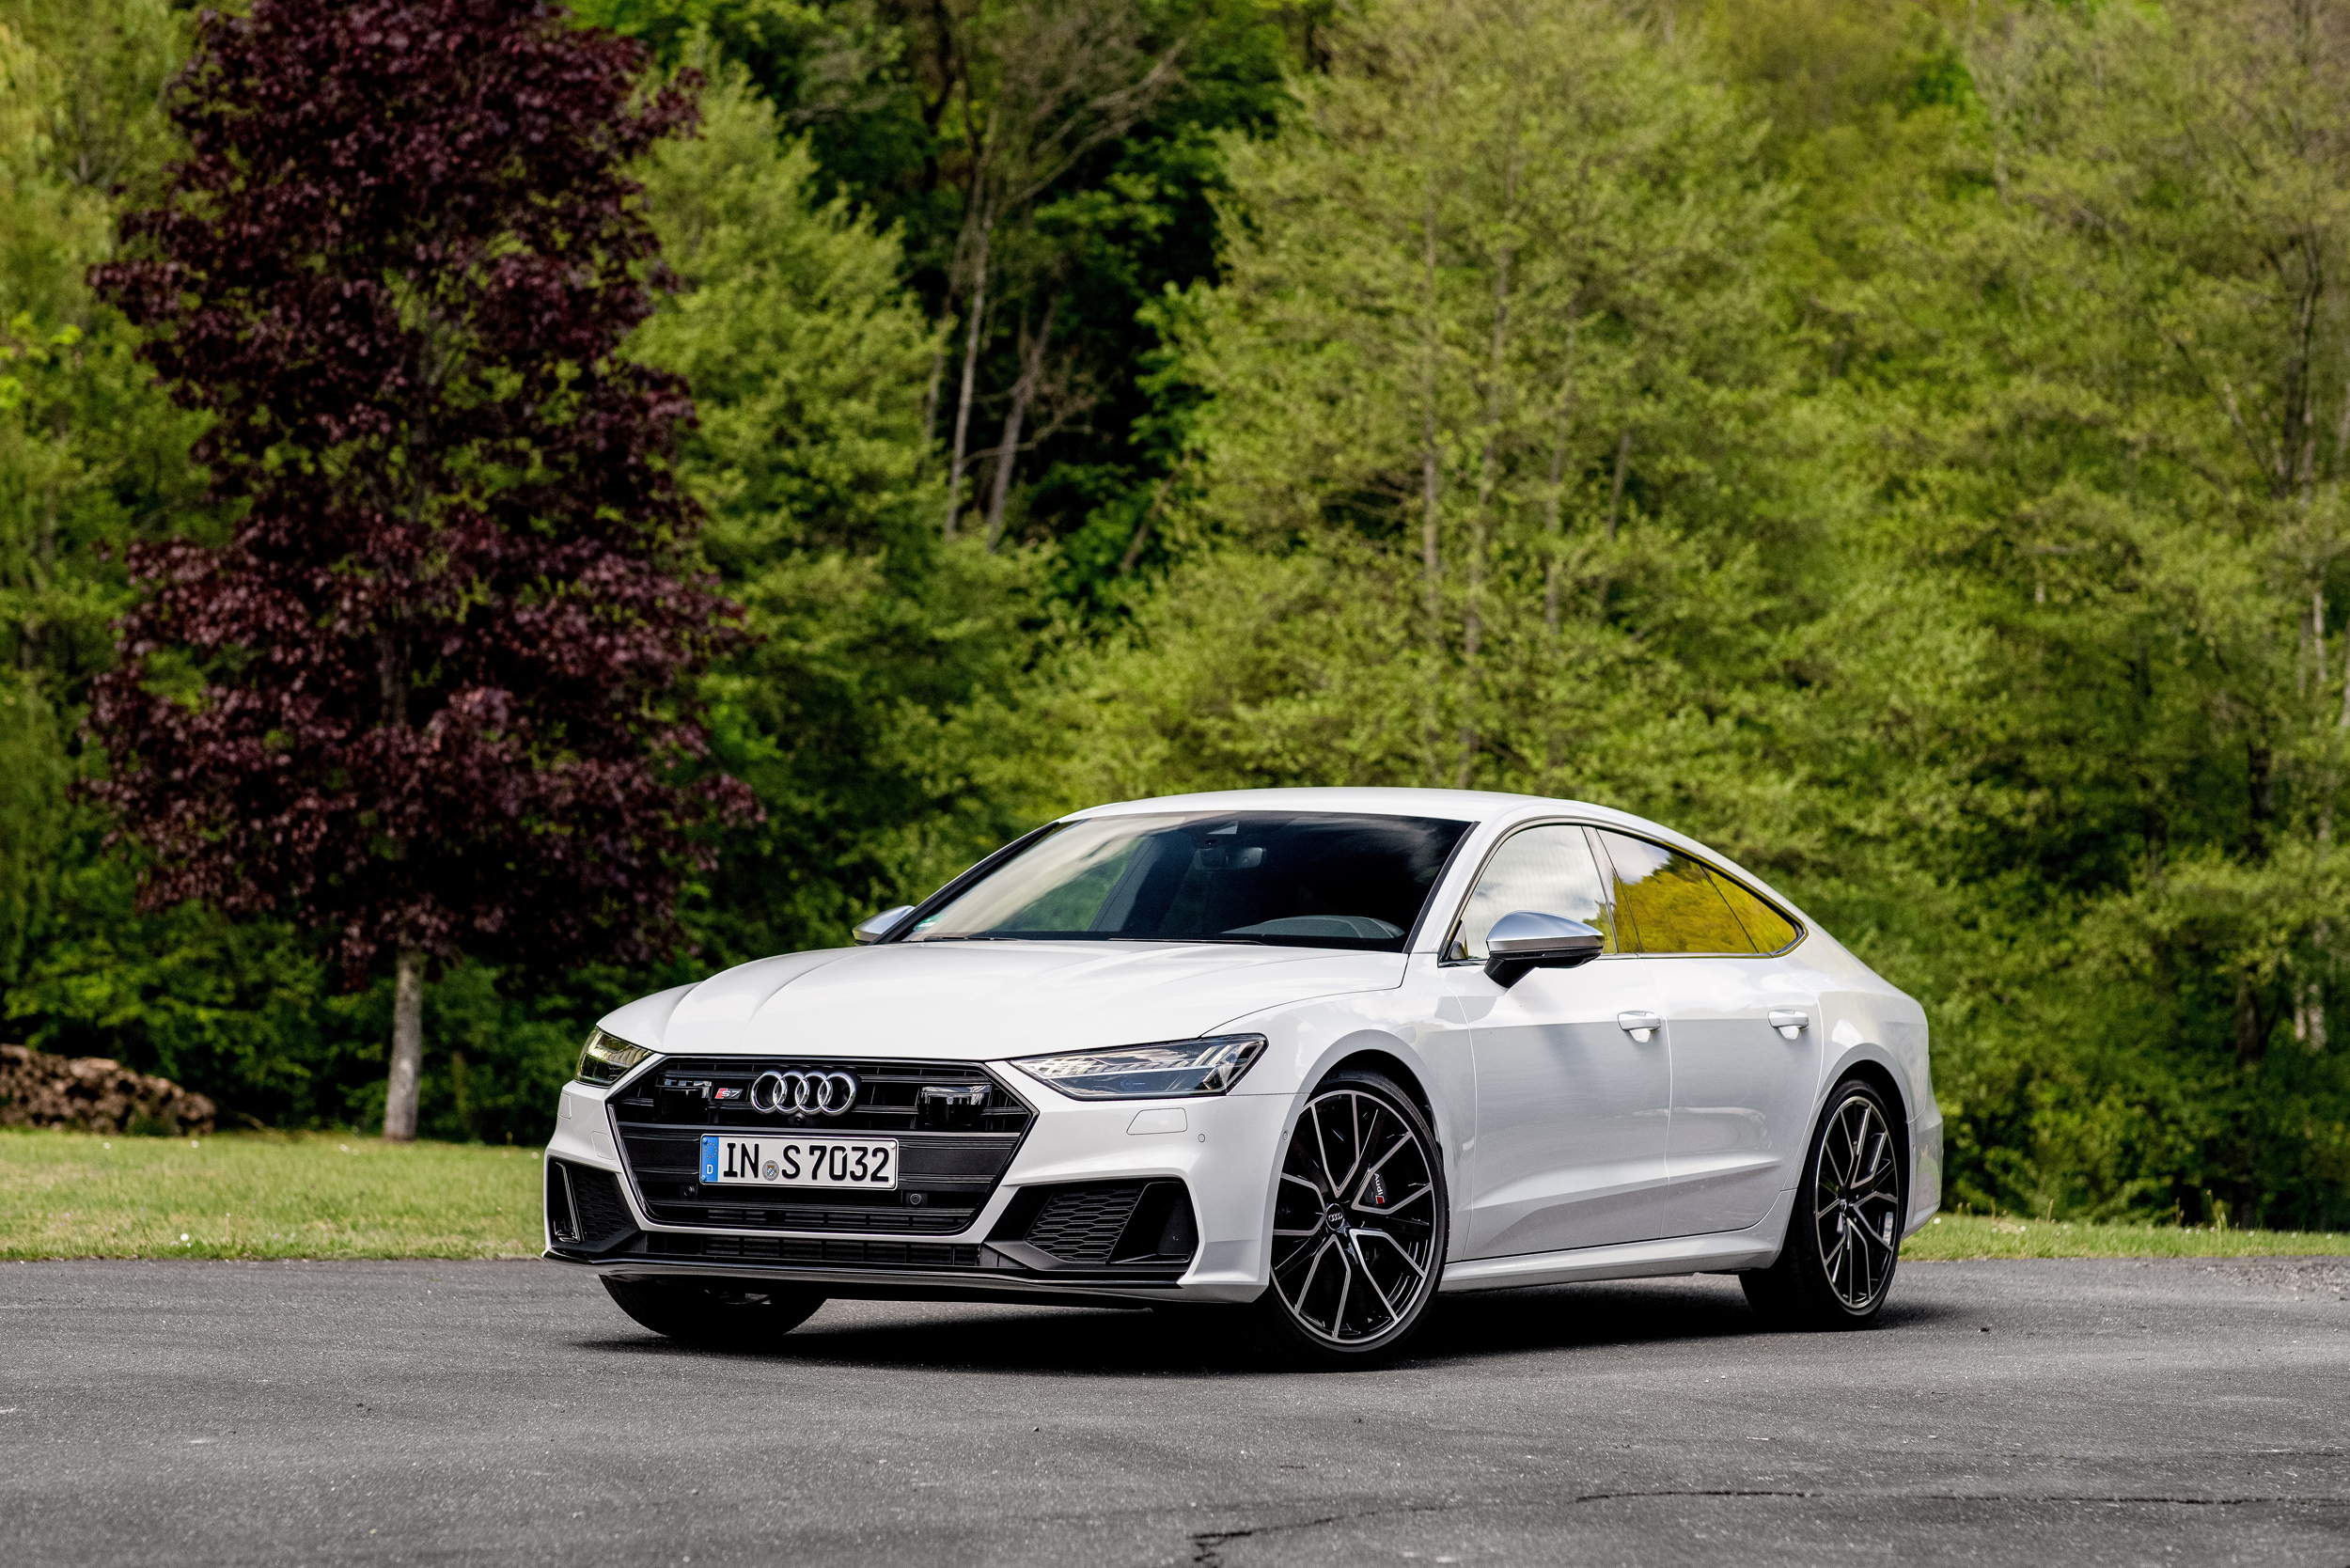 2020 audi s7 performance specs and pricing information released